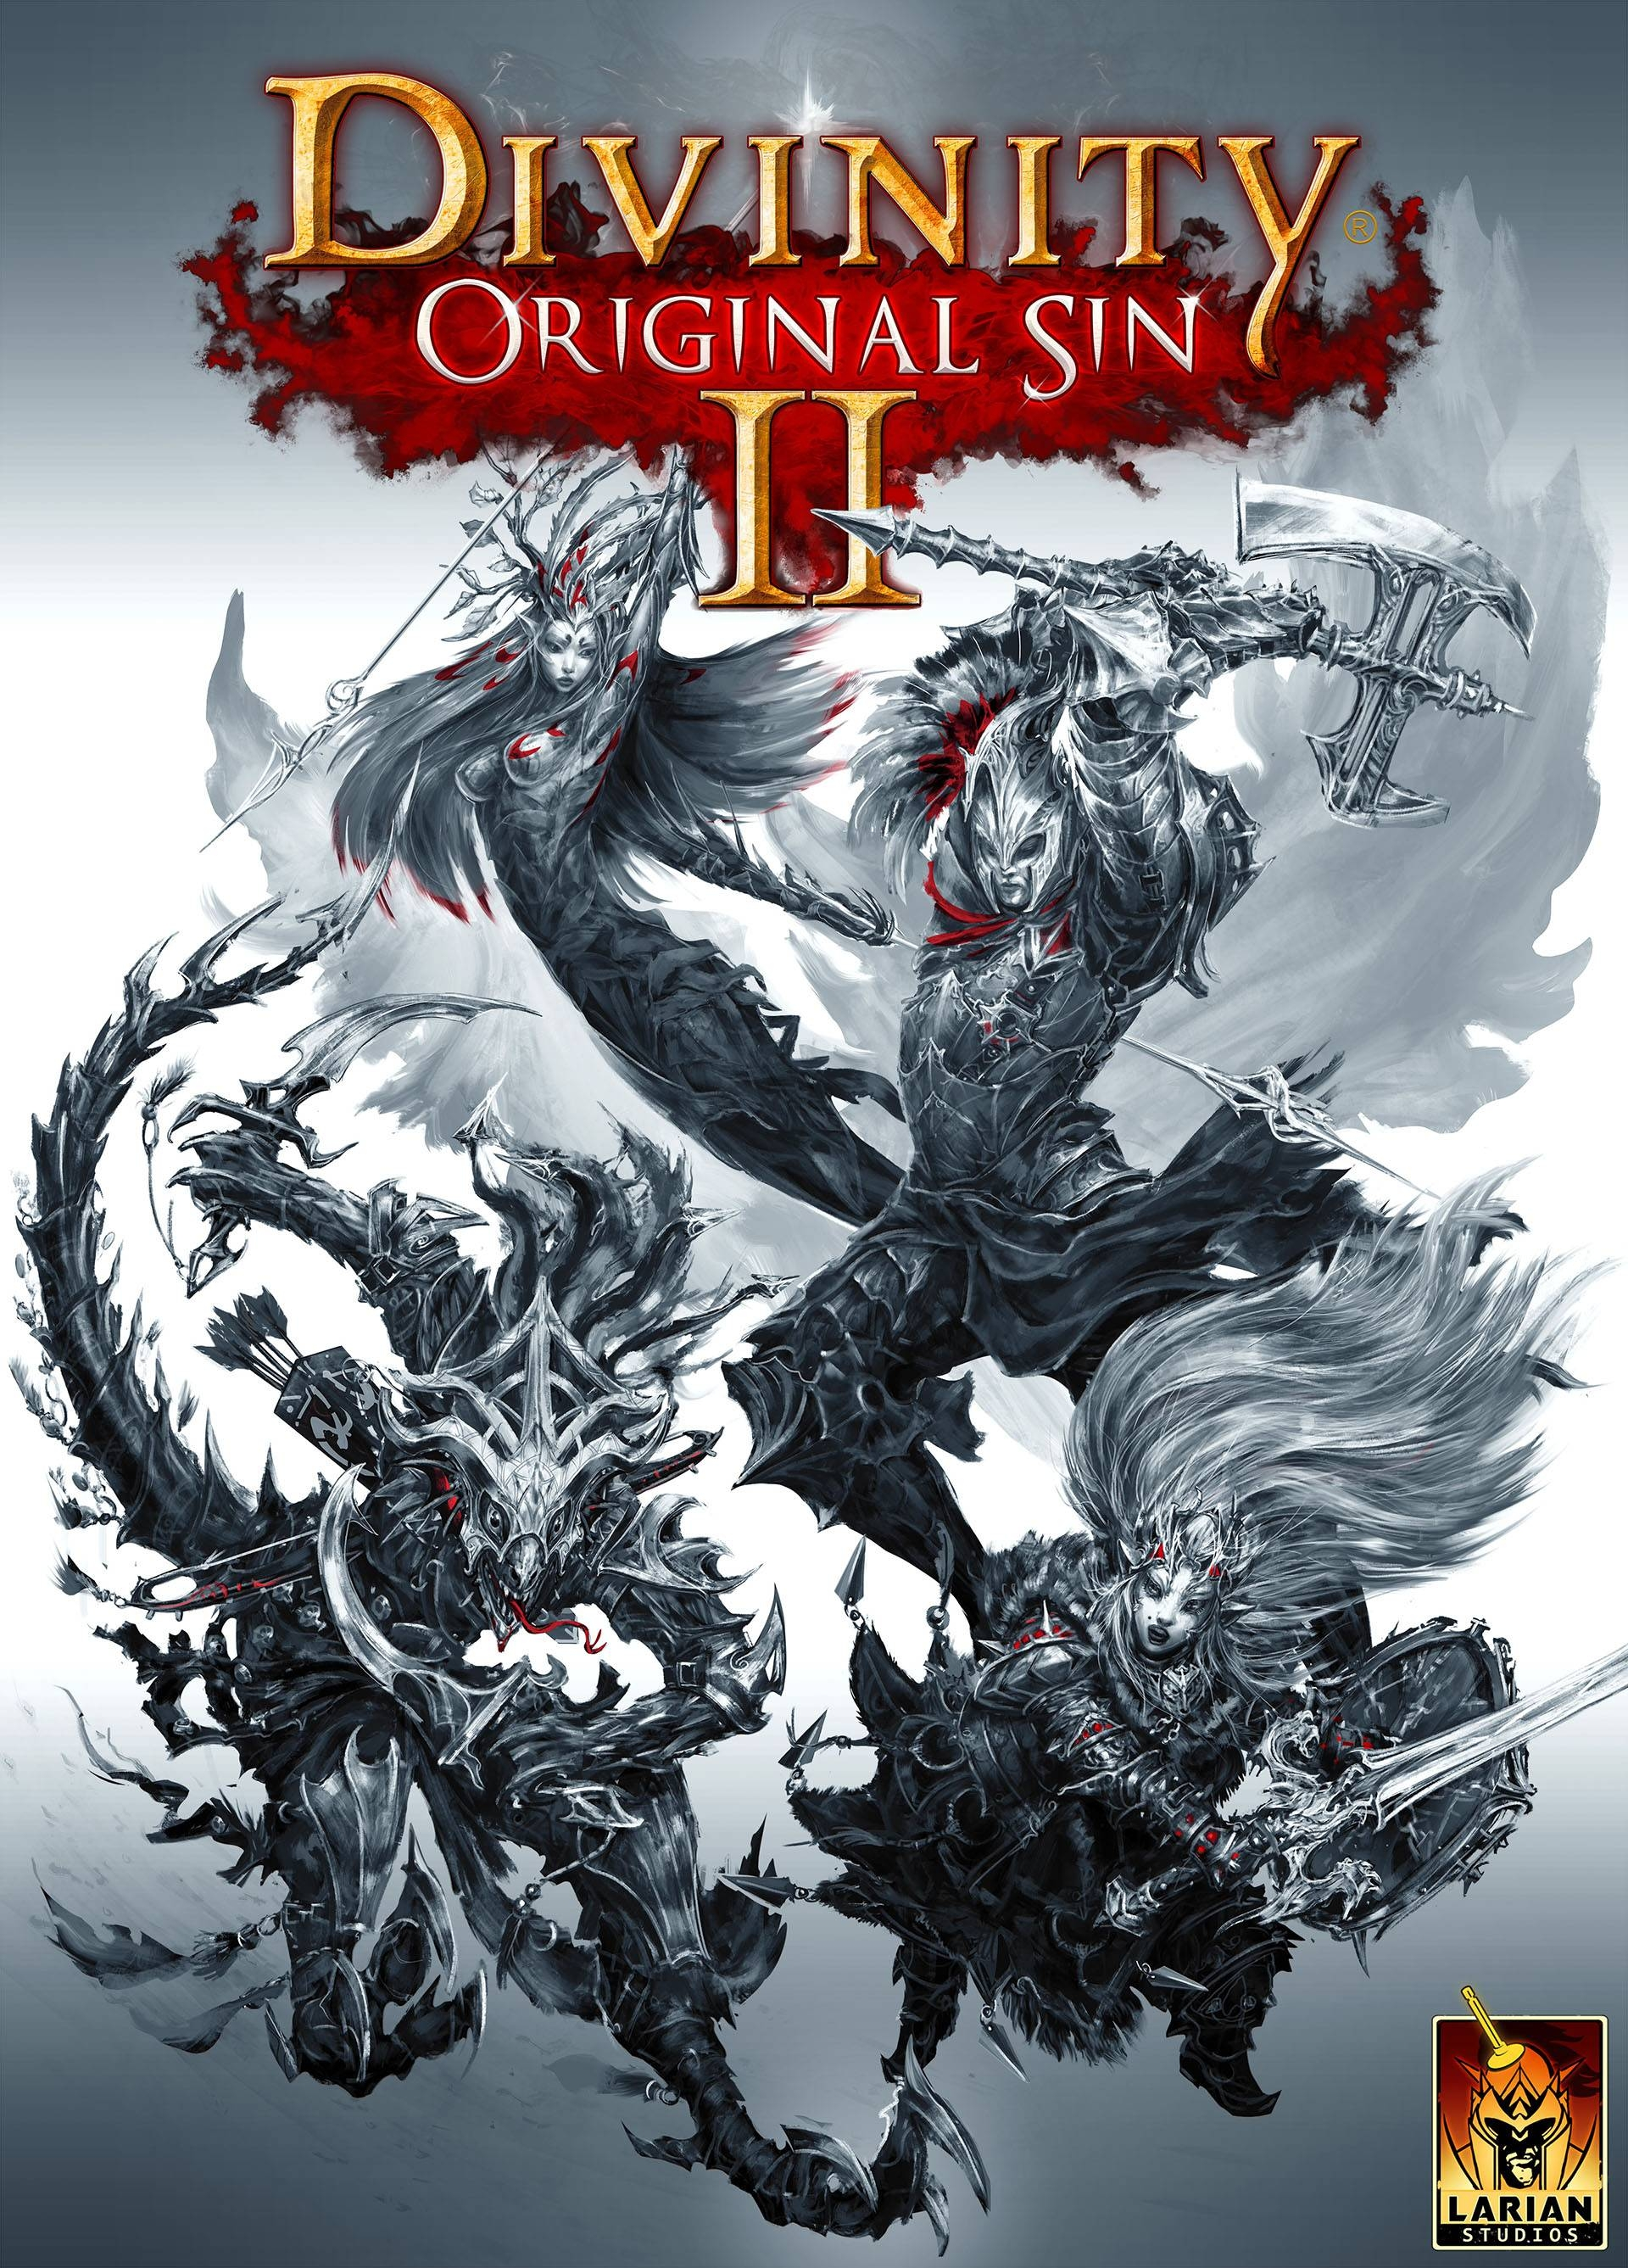 Divinity: Original Sin 2 - Definitive Edition {v.3.6.58.1306 (36113)+DLC } (2017)